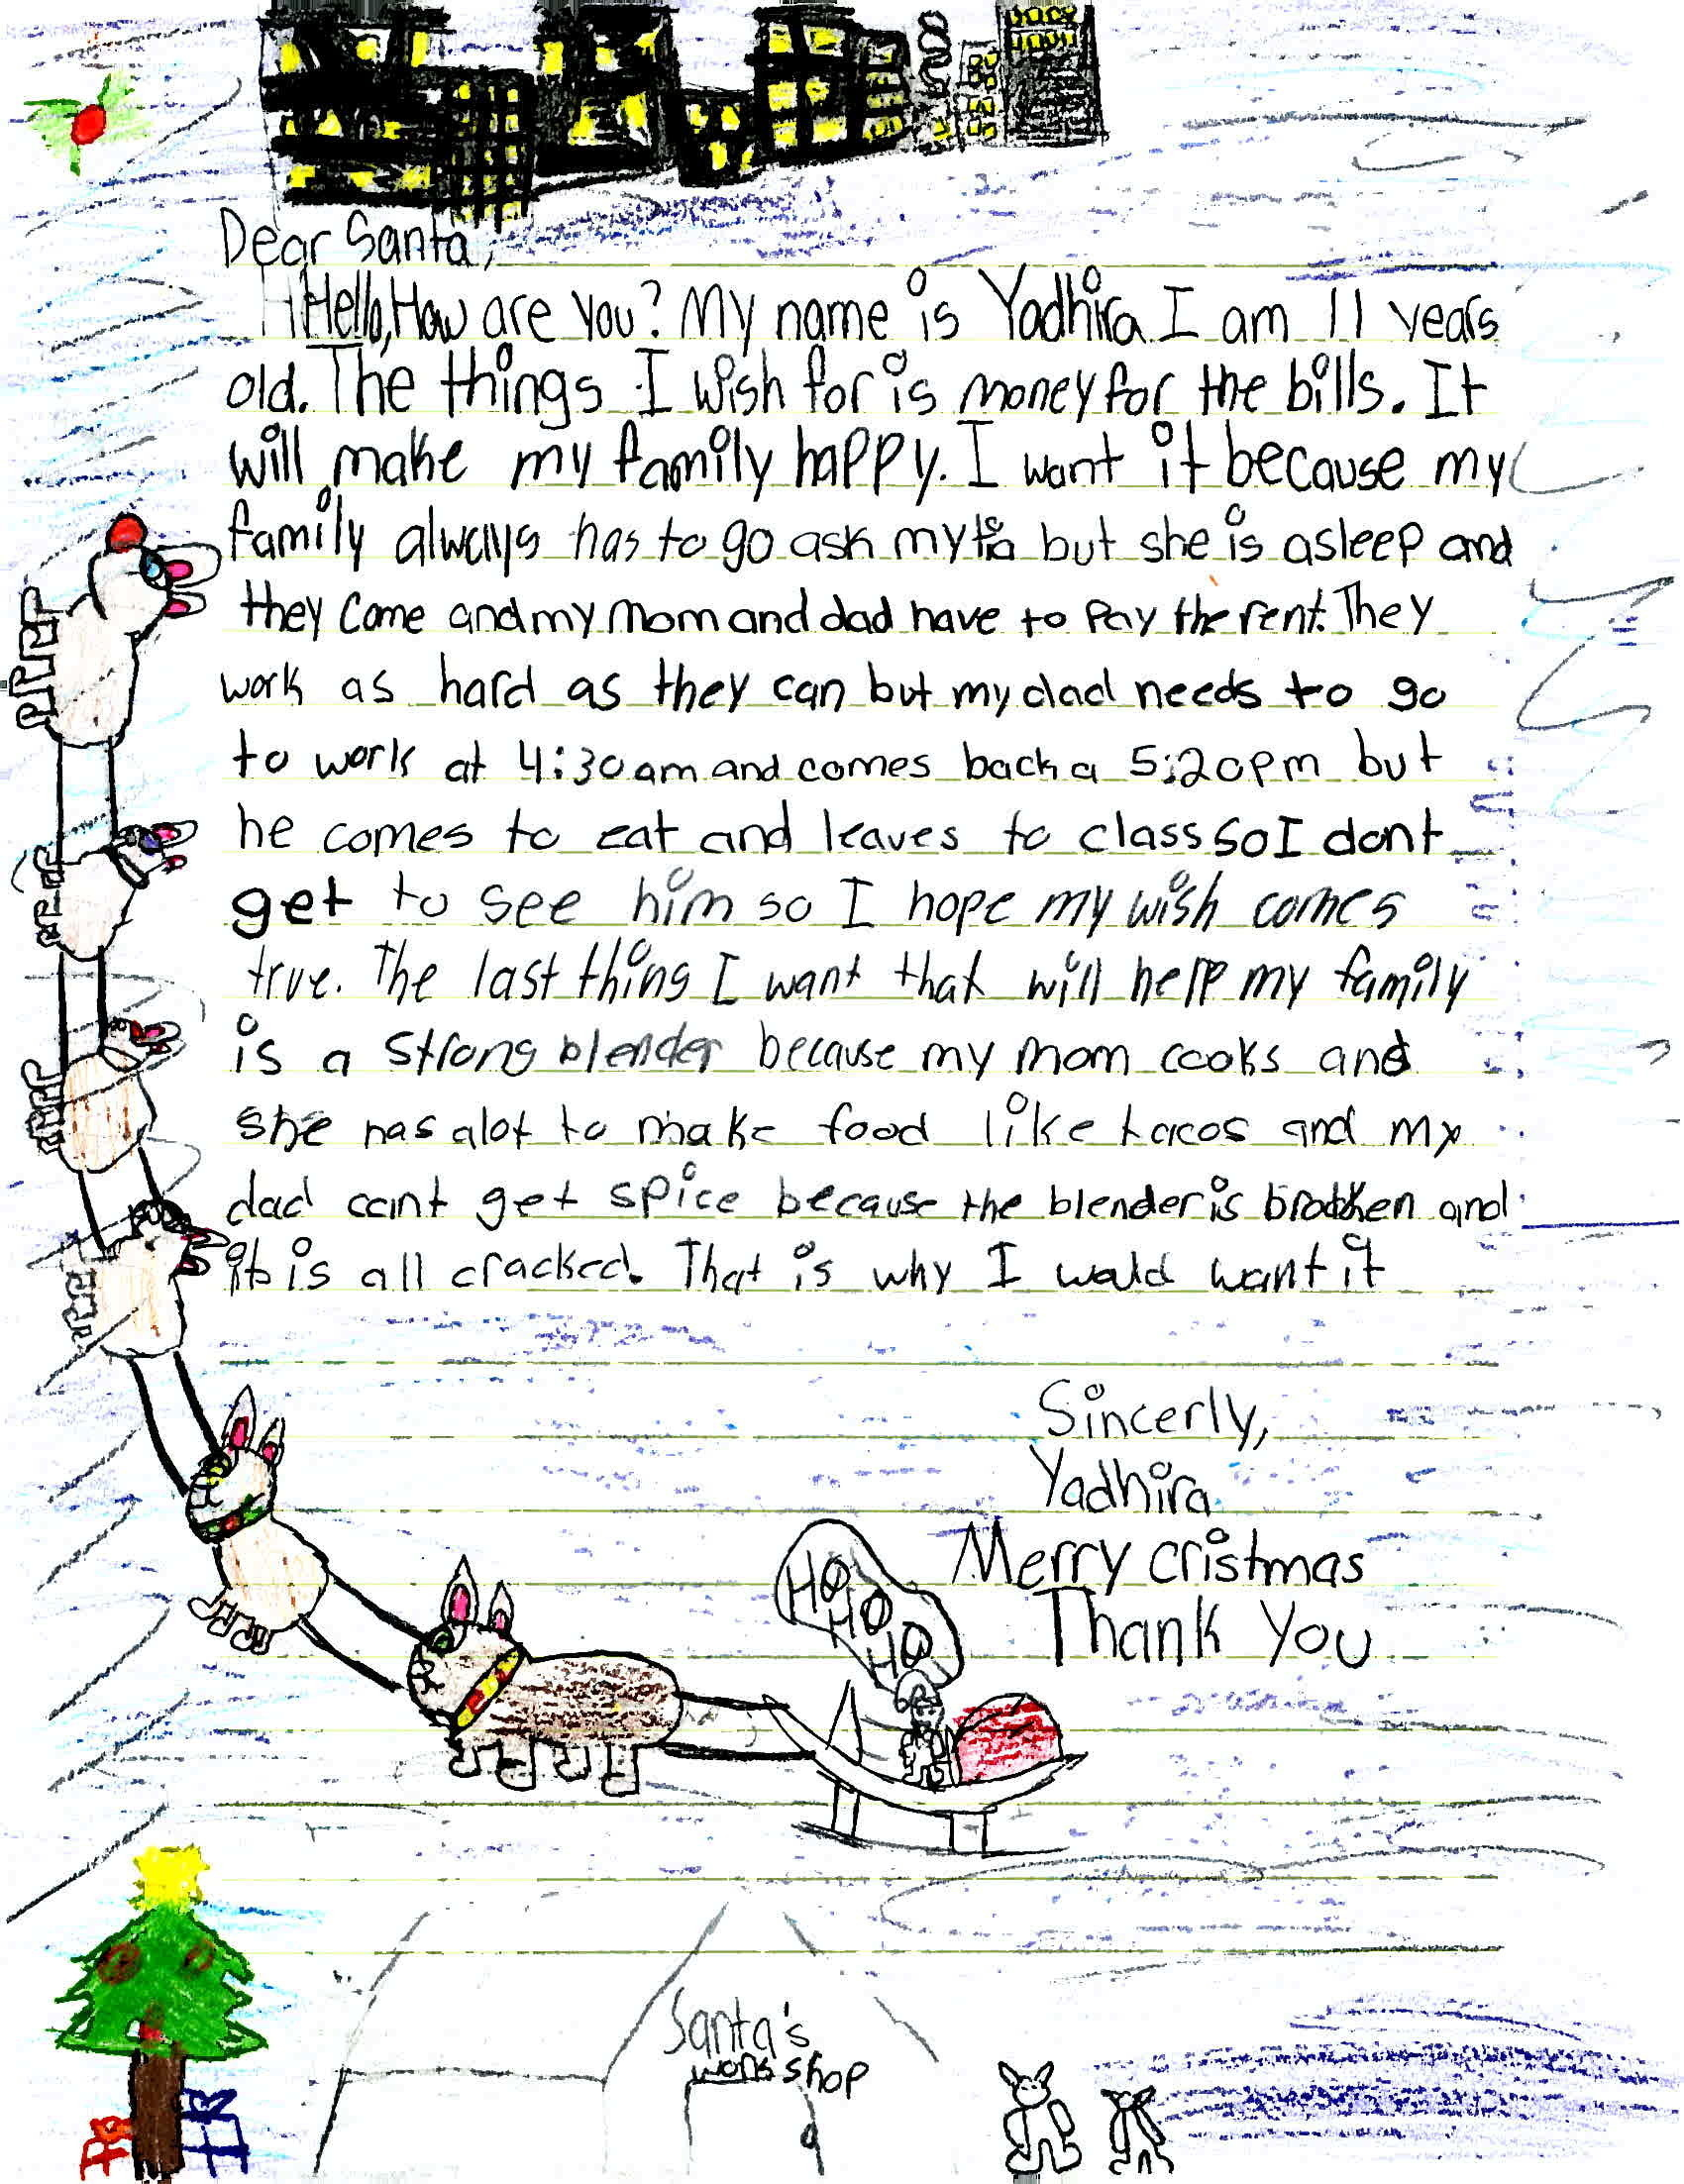 Christmas Assistance 2021 In Christmas Wish Lists Children Write Of Pandemic Hardships Npr